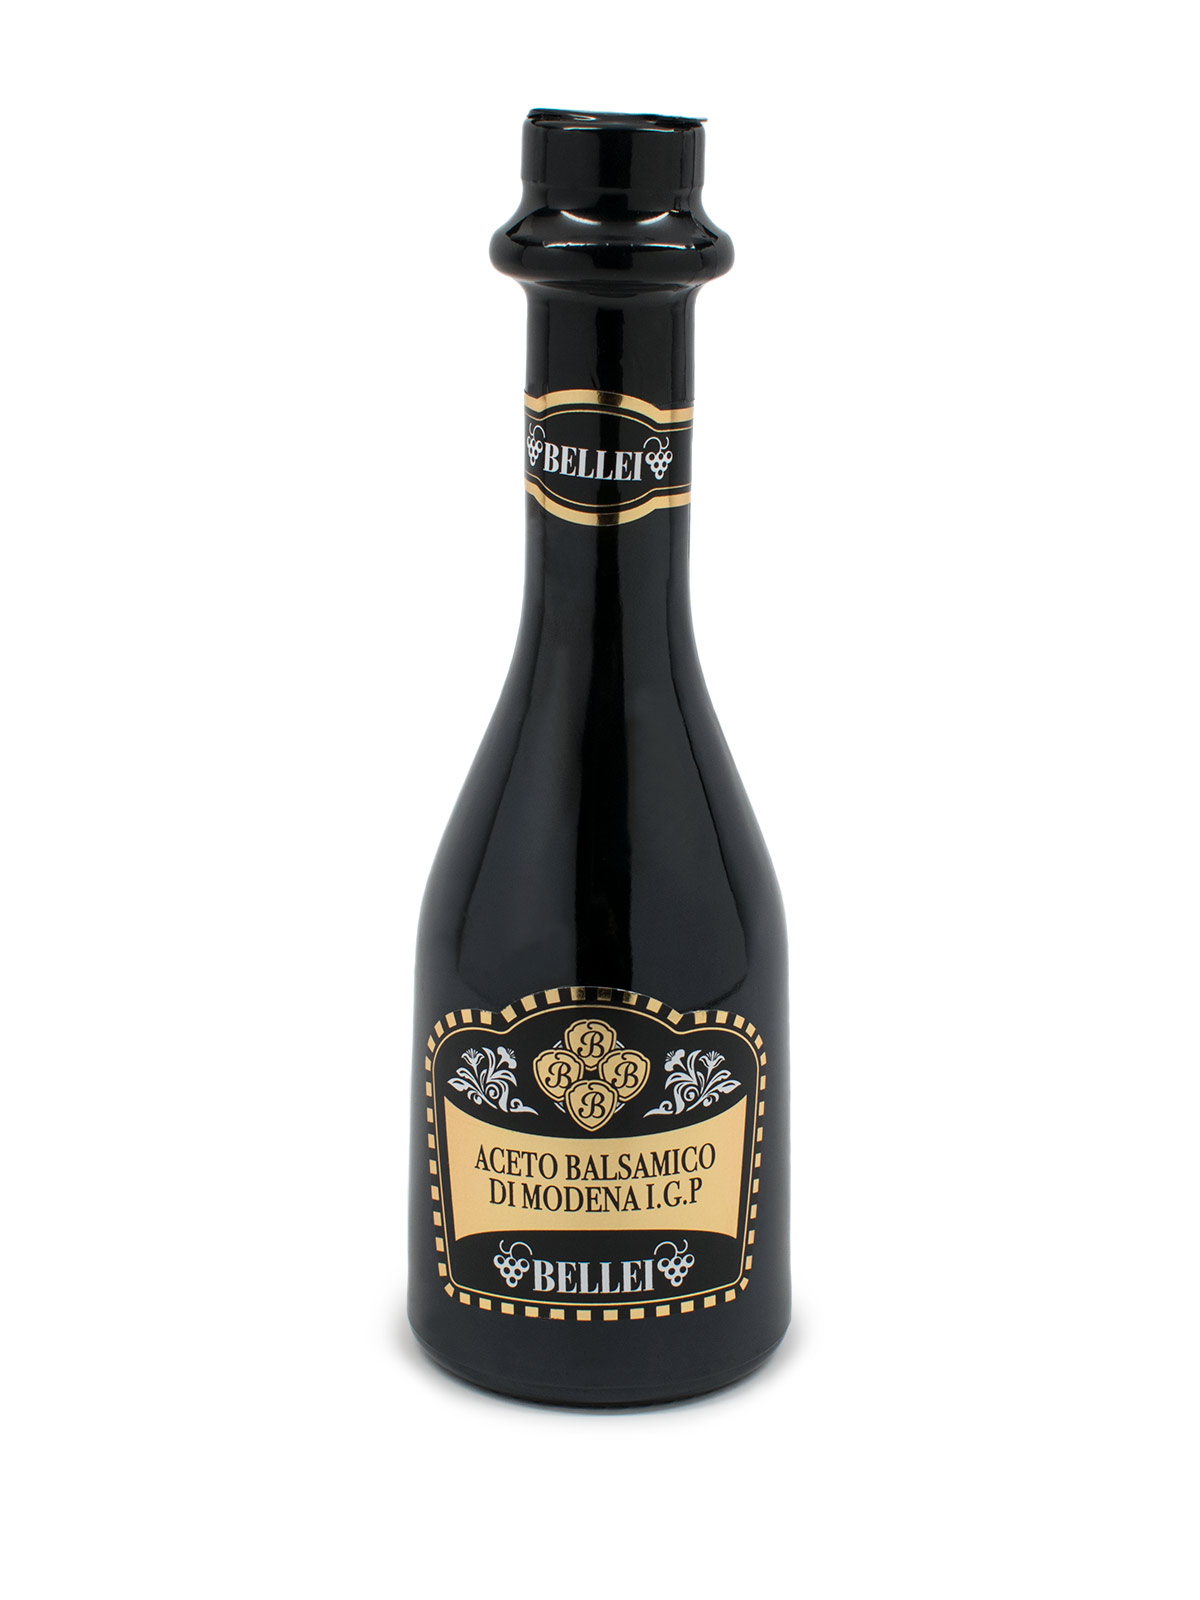 Black Label Balsamic Vinegar of Modena I.G.P. - 8 Year - Oils & Vinegars - Buon'Italia